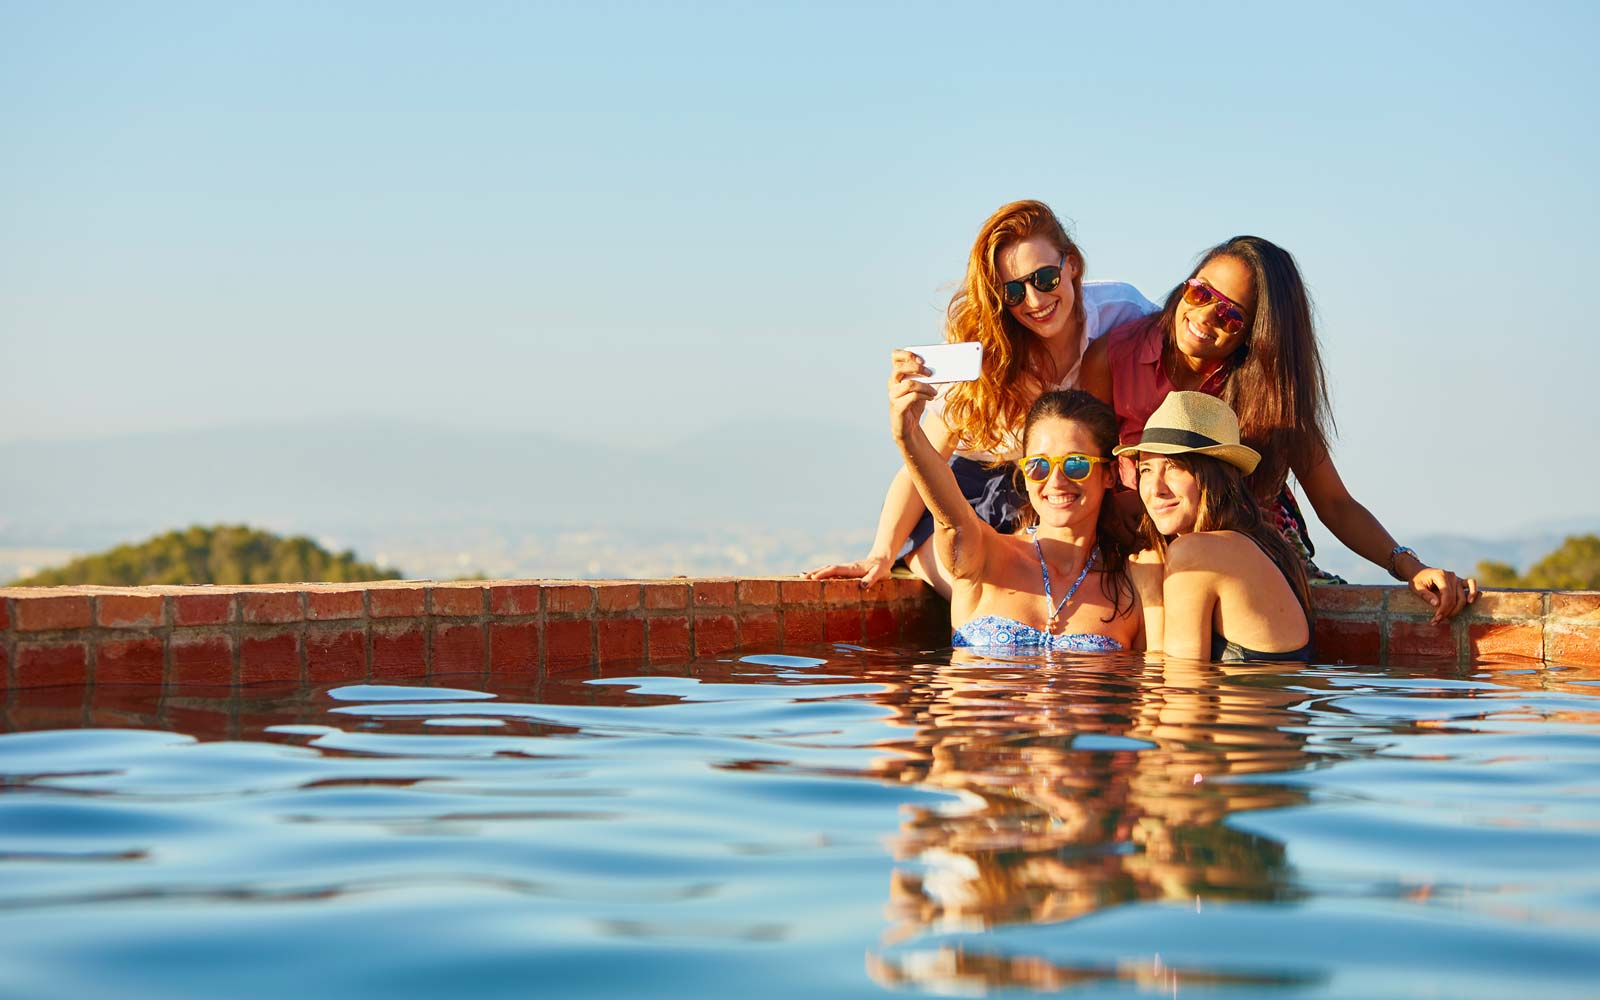 Female friends taking self portrait at pool's edge